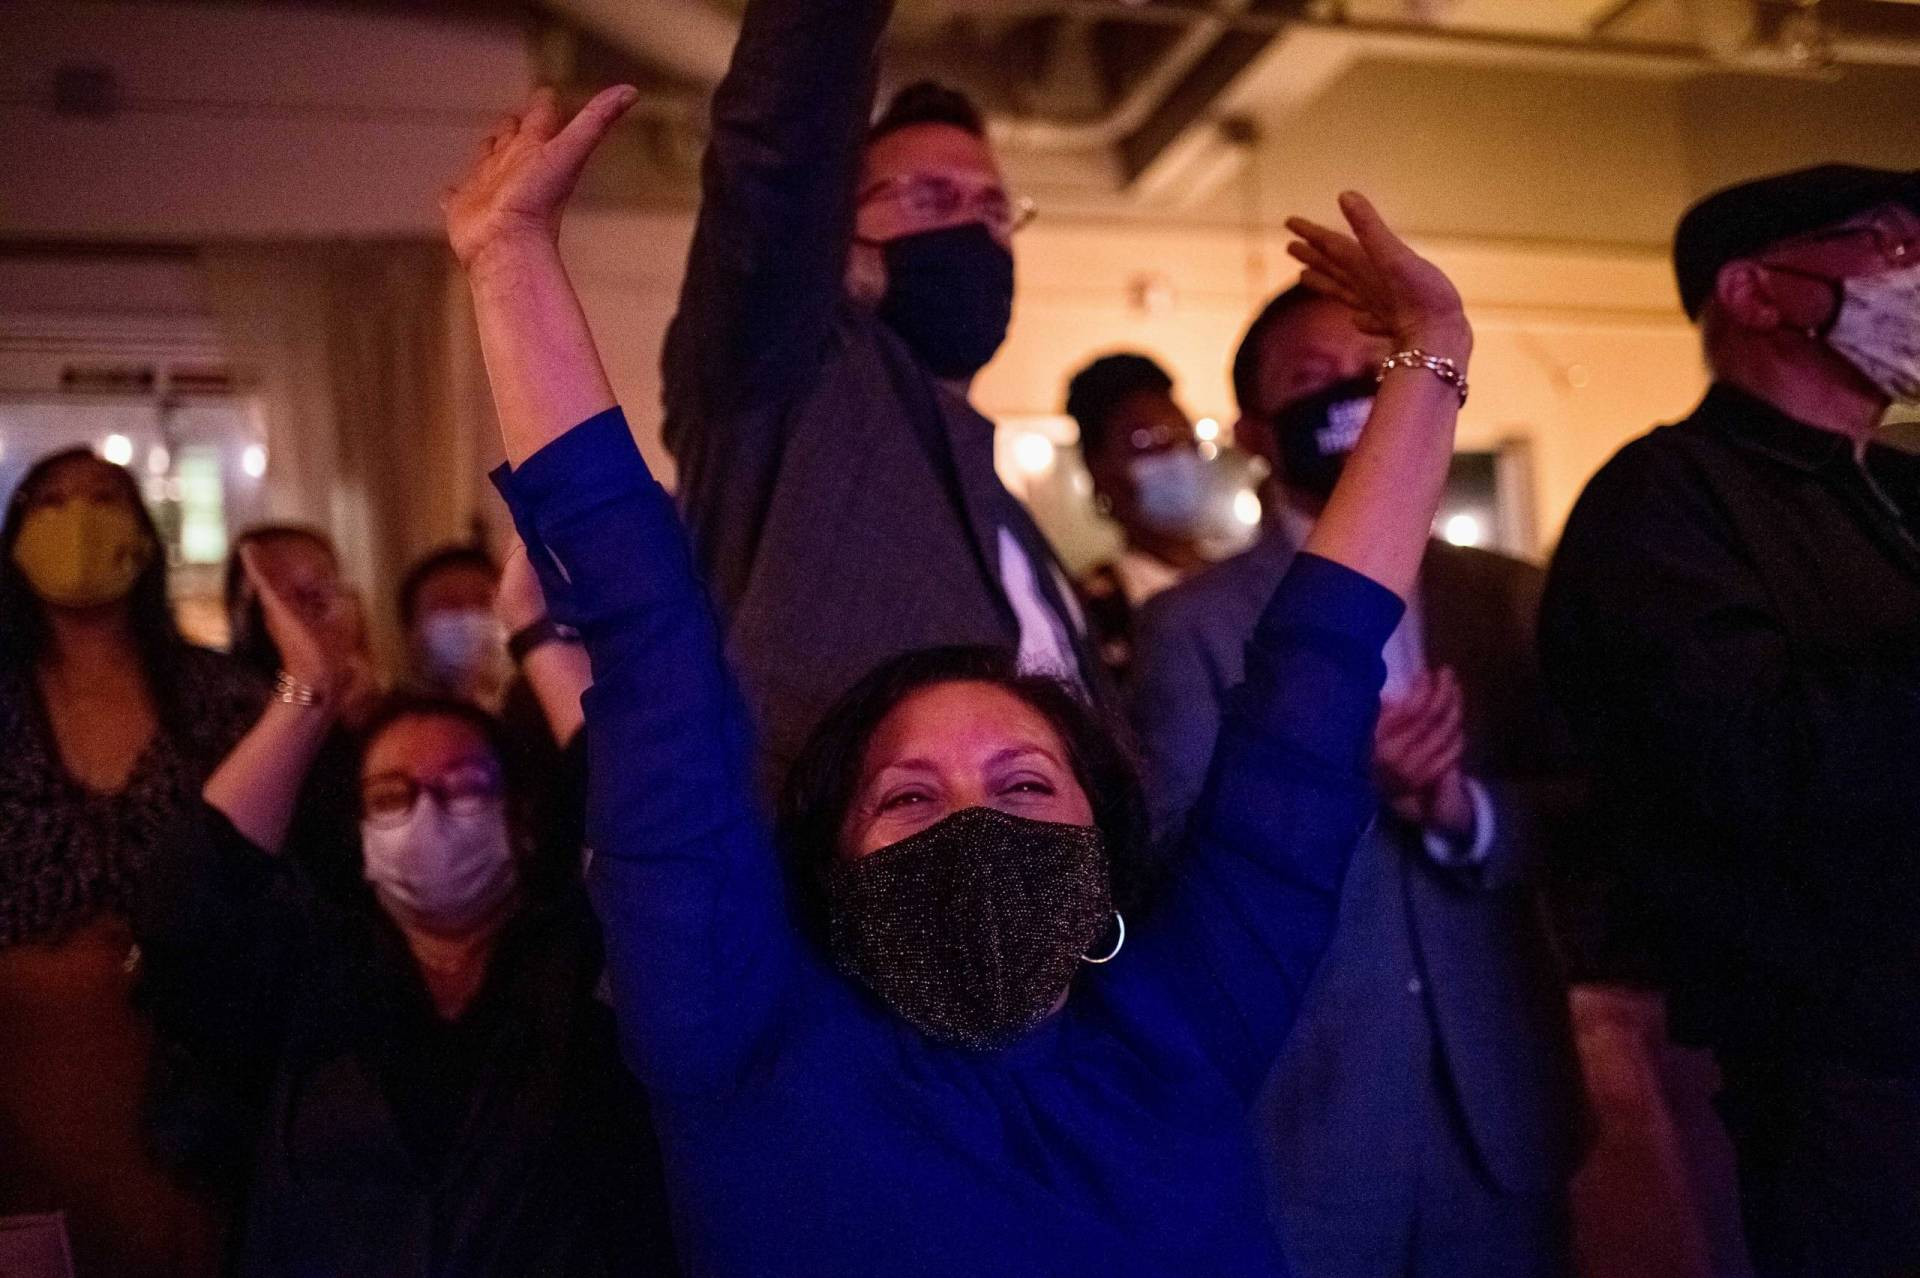 A group of masked Newsom supporters cheer and throw their hands in the air.